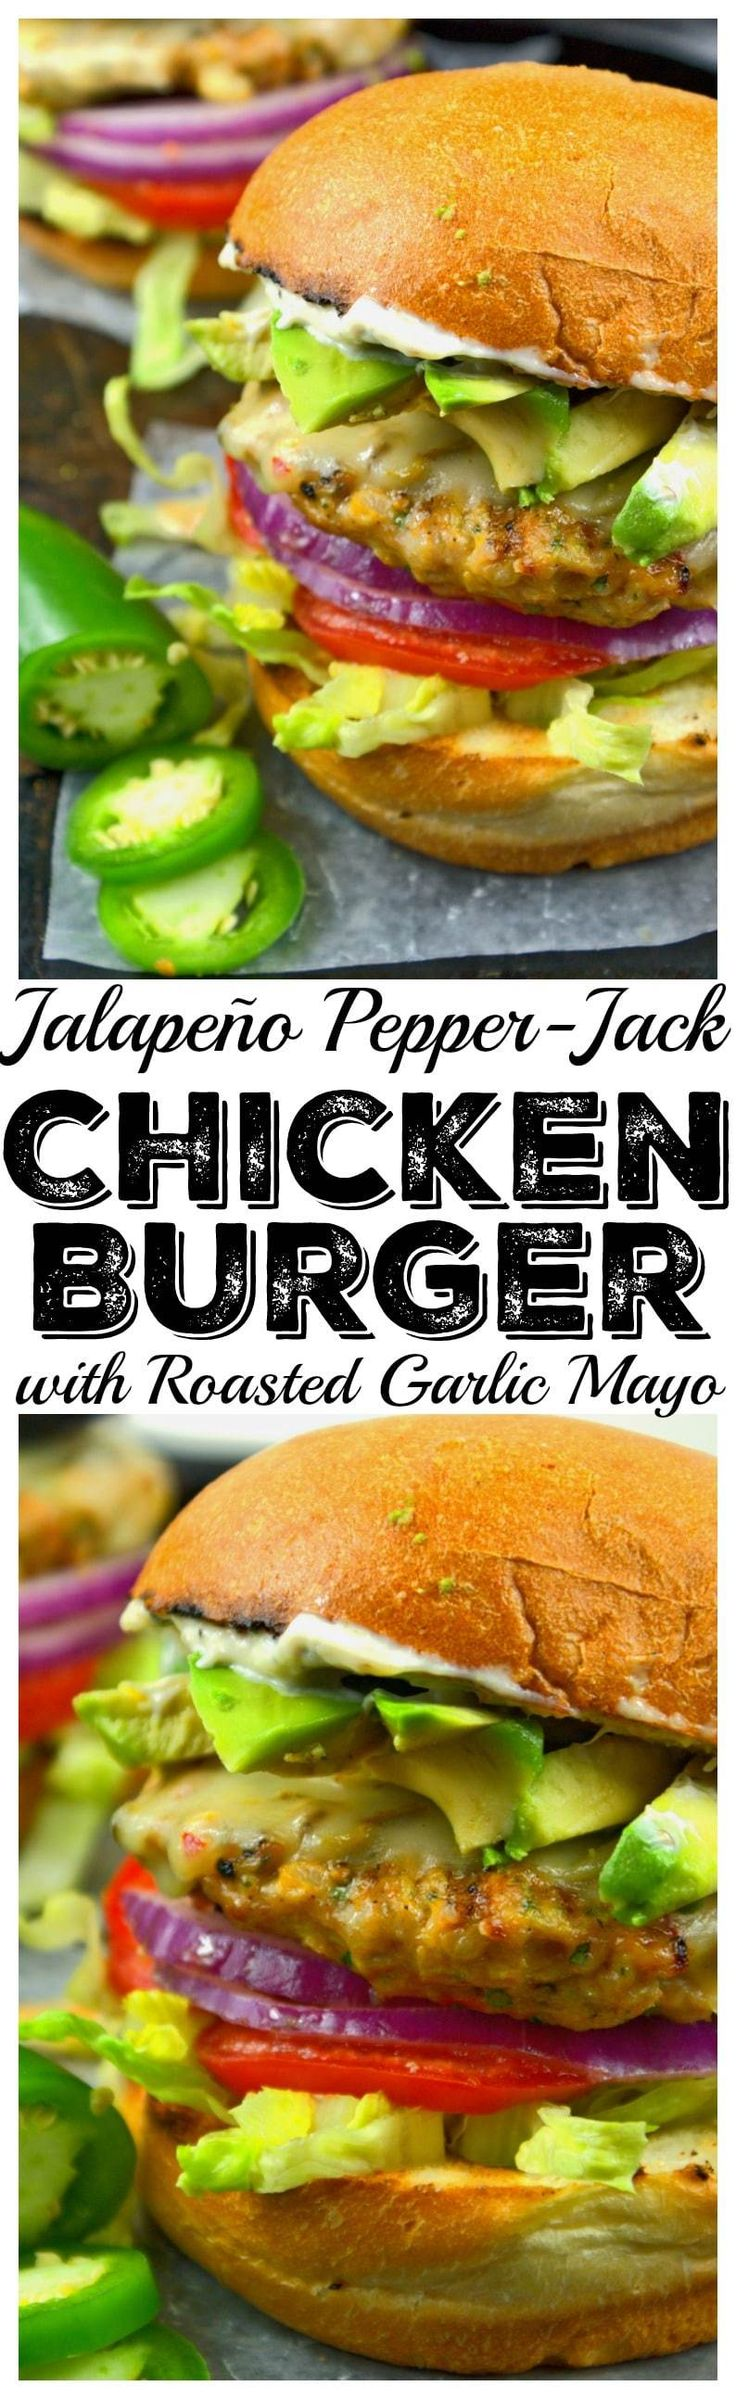 These jalapeno pepper jack chicken burgers are truly to die for. Super moist and bursting with flavor.